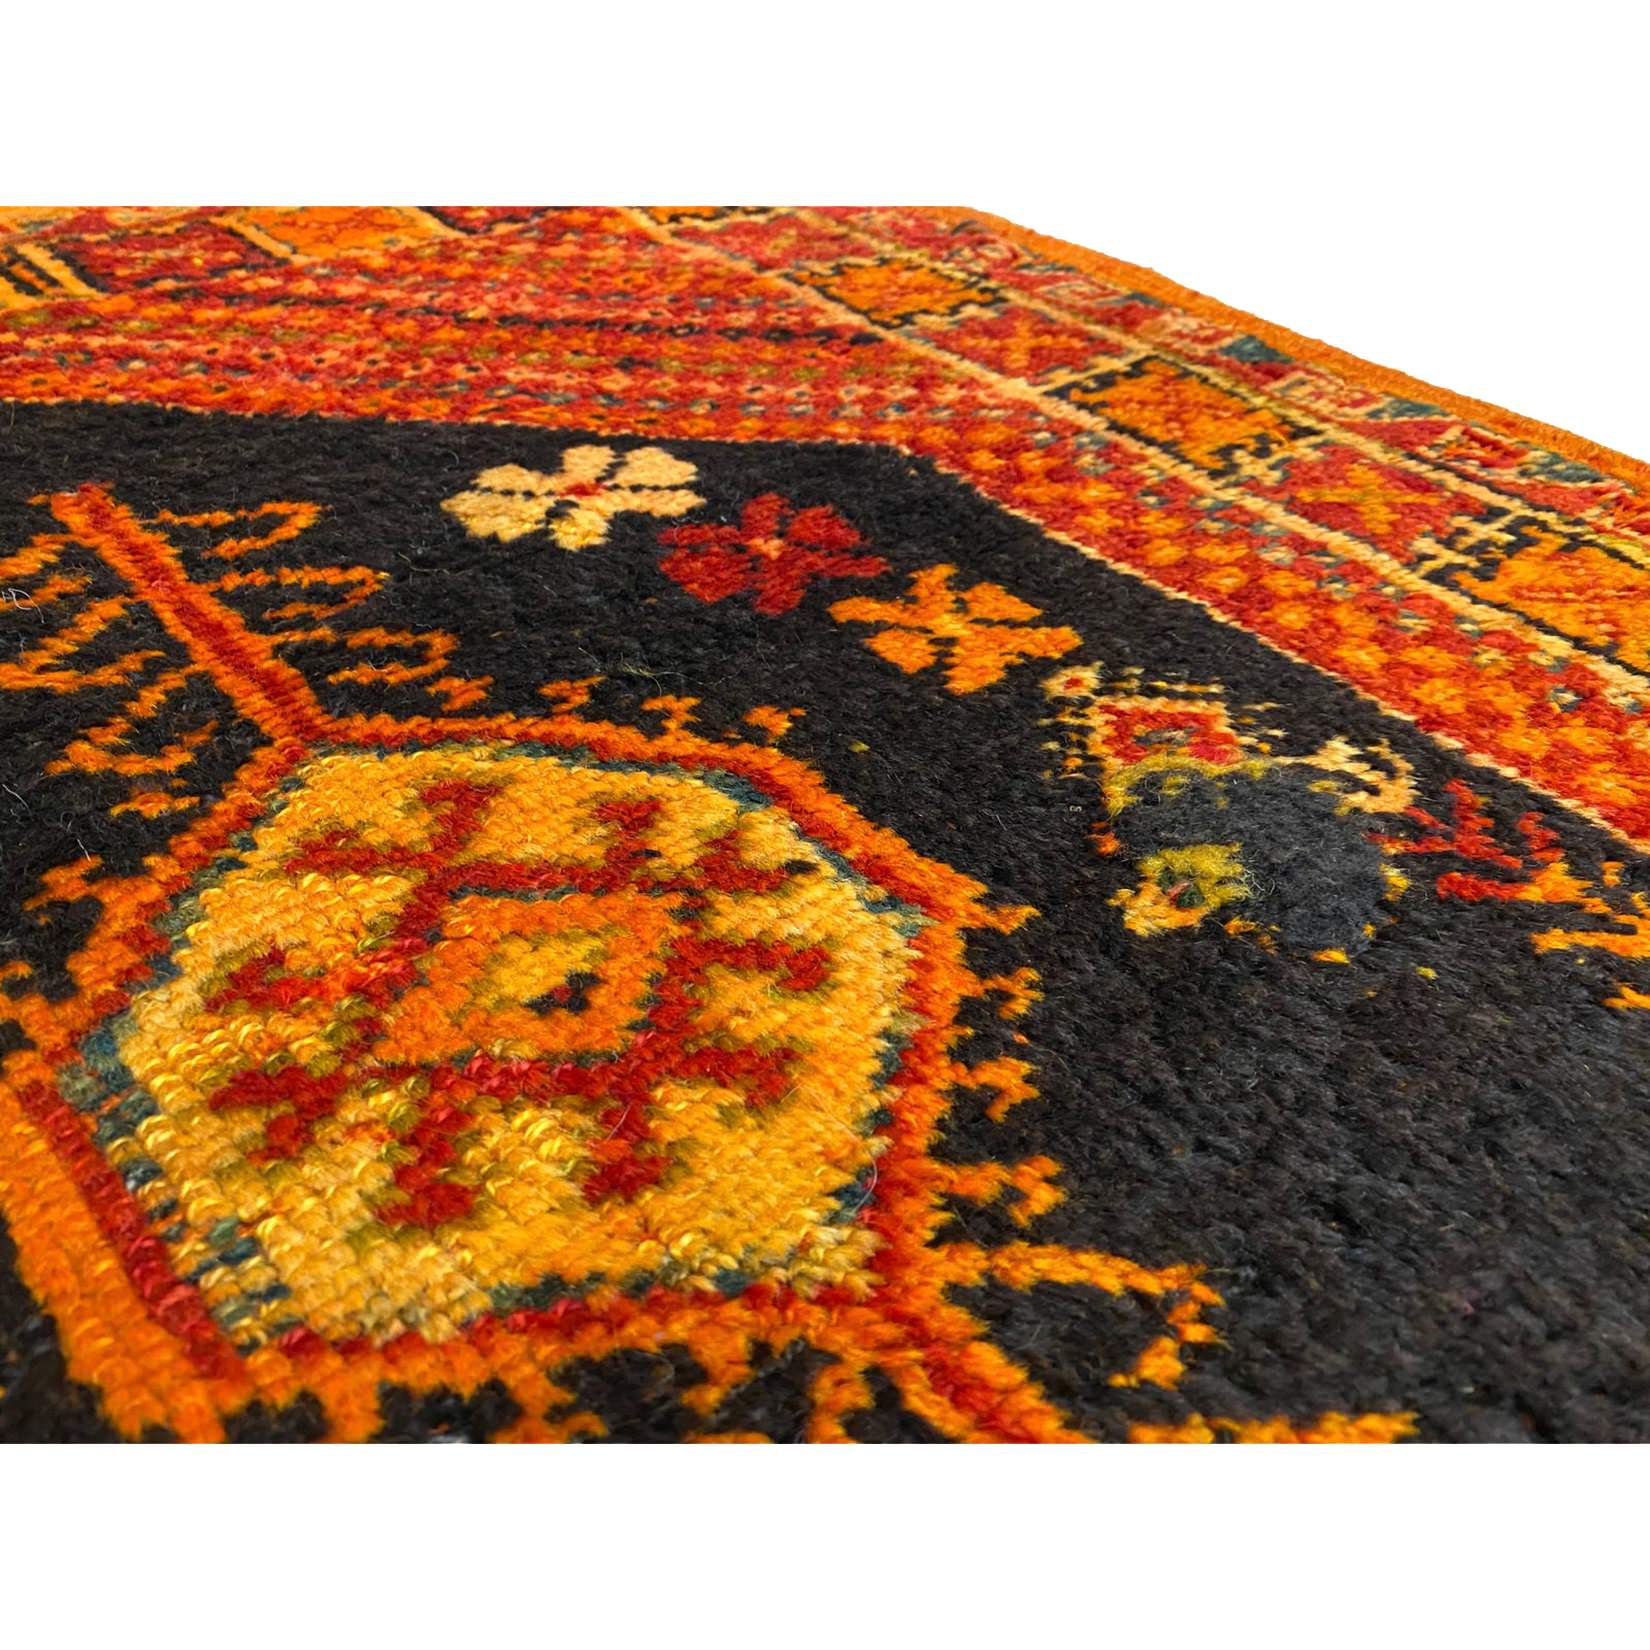 Orange handknotted wool berber carpet - Kantara | Moroccan Rugs